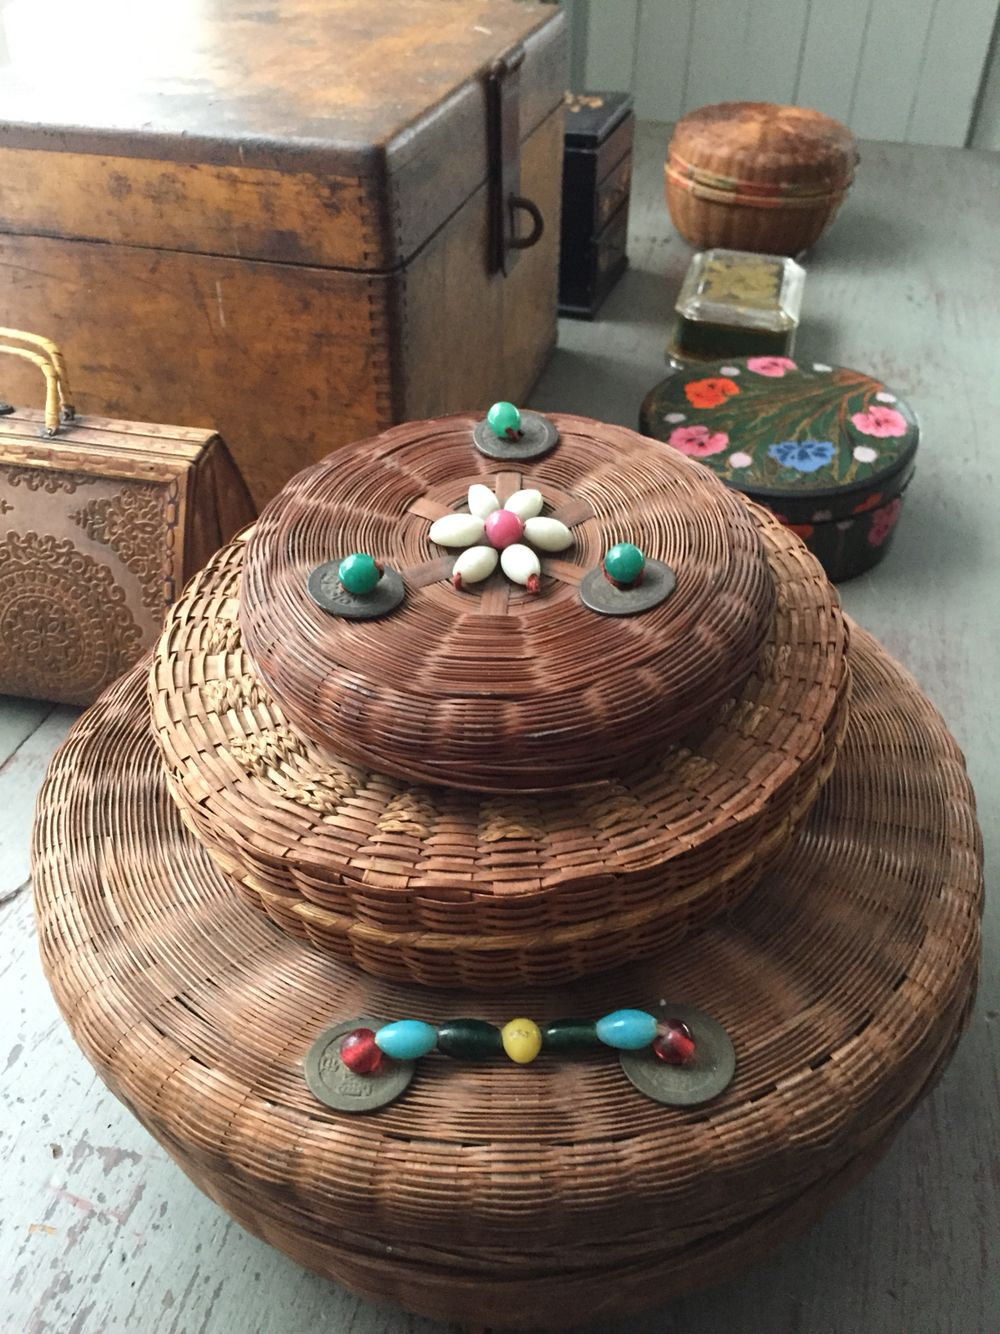 Old sowing baskets and boxes